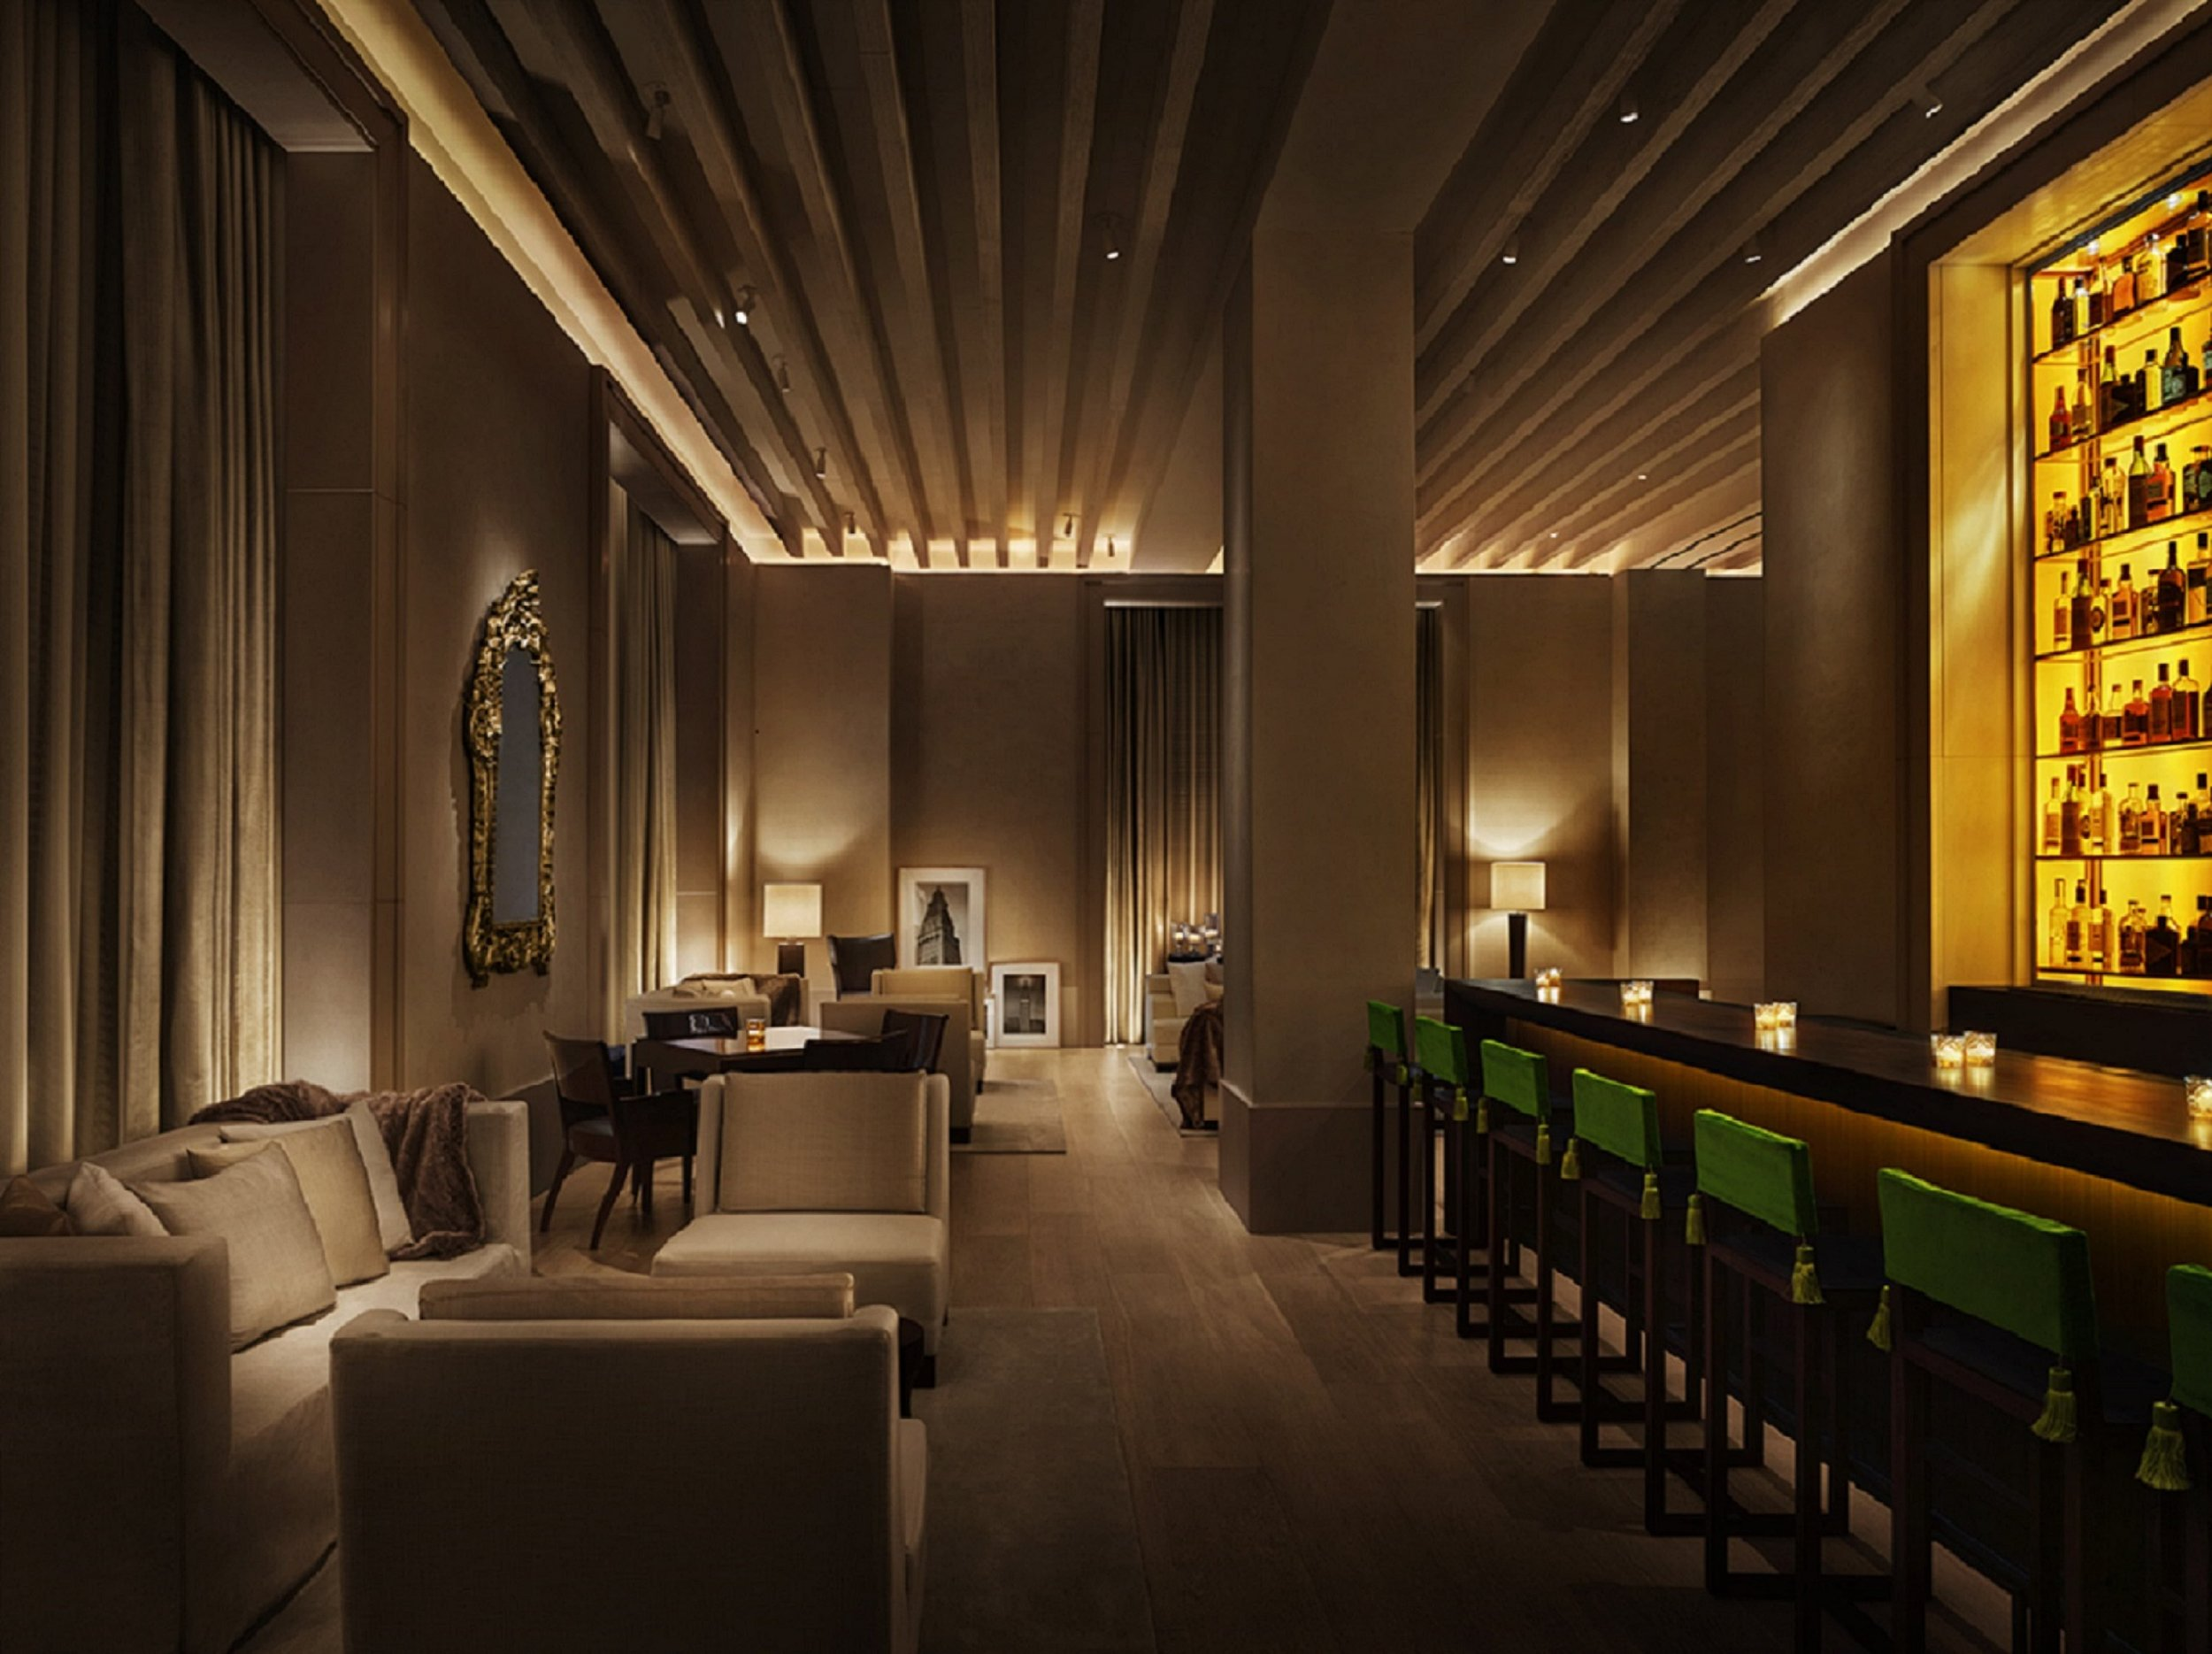 The New York EDITION Lobby Bar 002 - Credit Nikolas Koenig-min.jpg